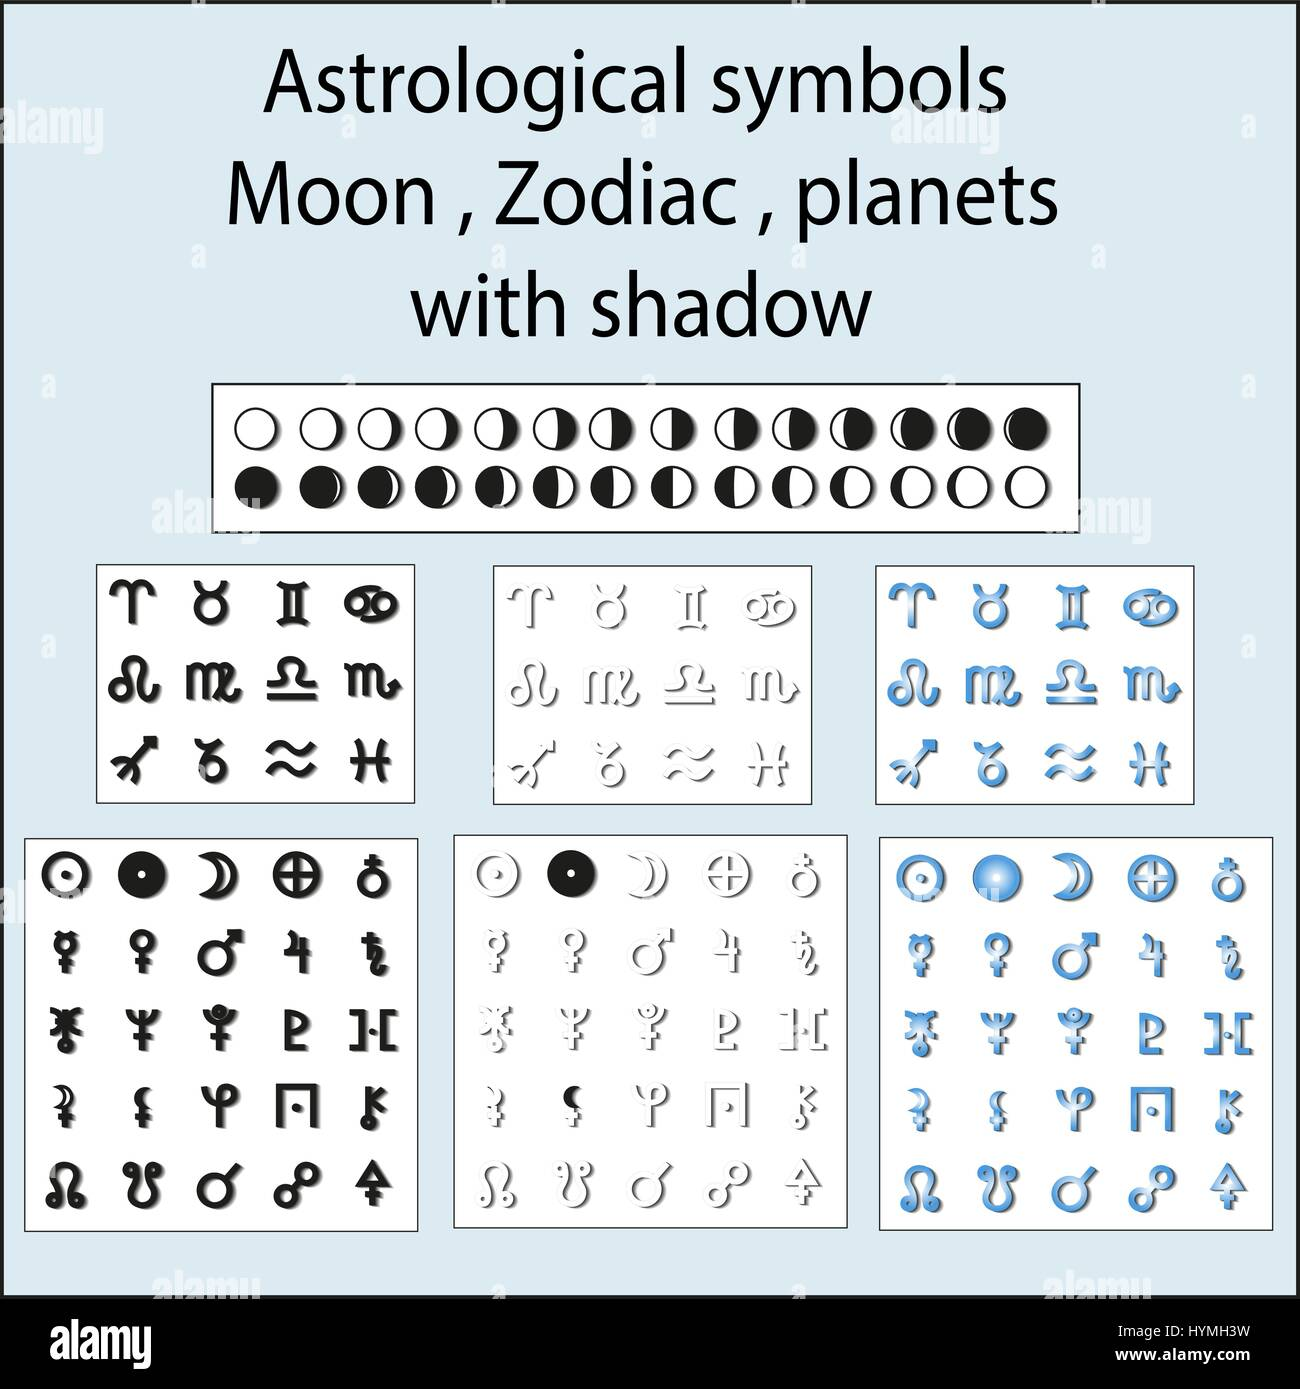 Astrological symbols of the moon, the planets, the zodiac